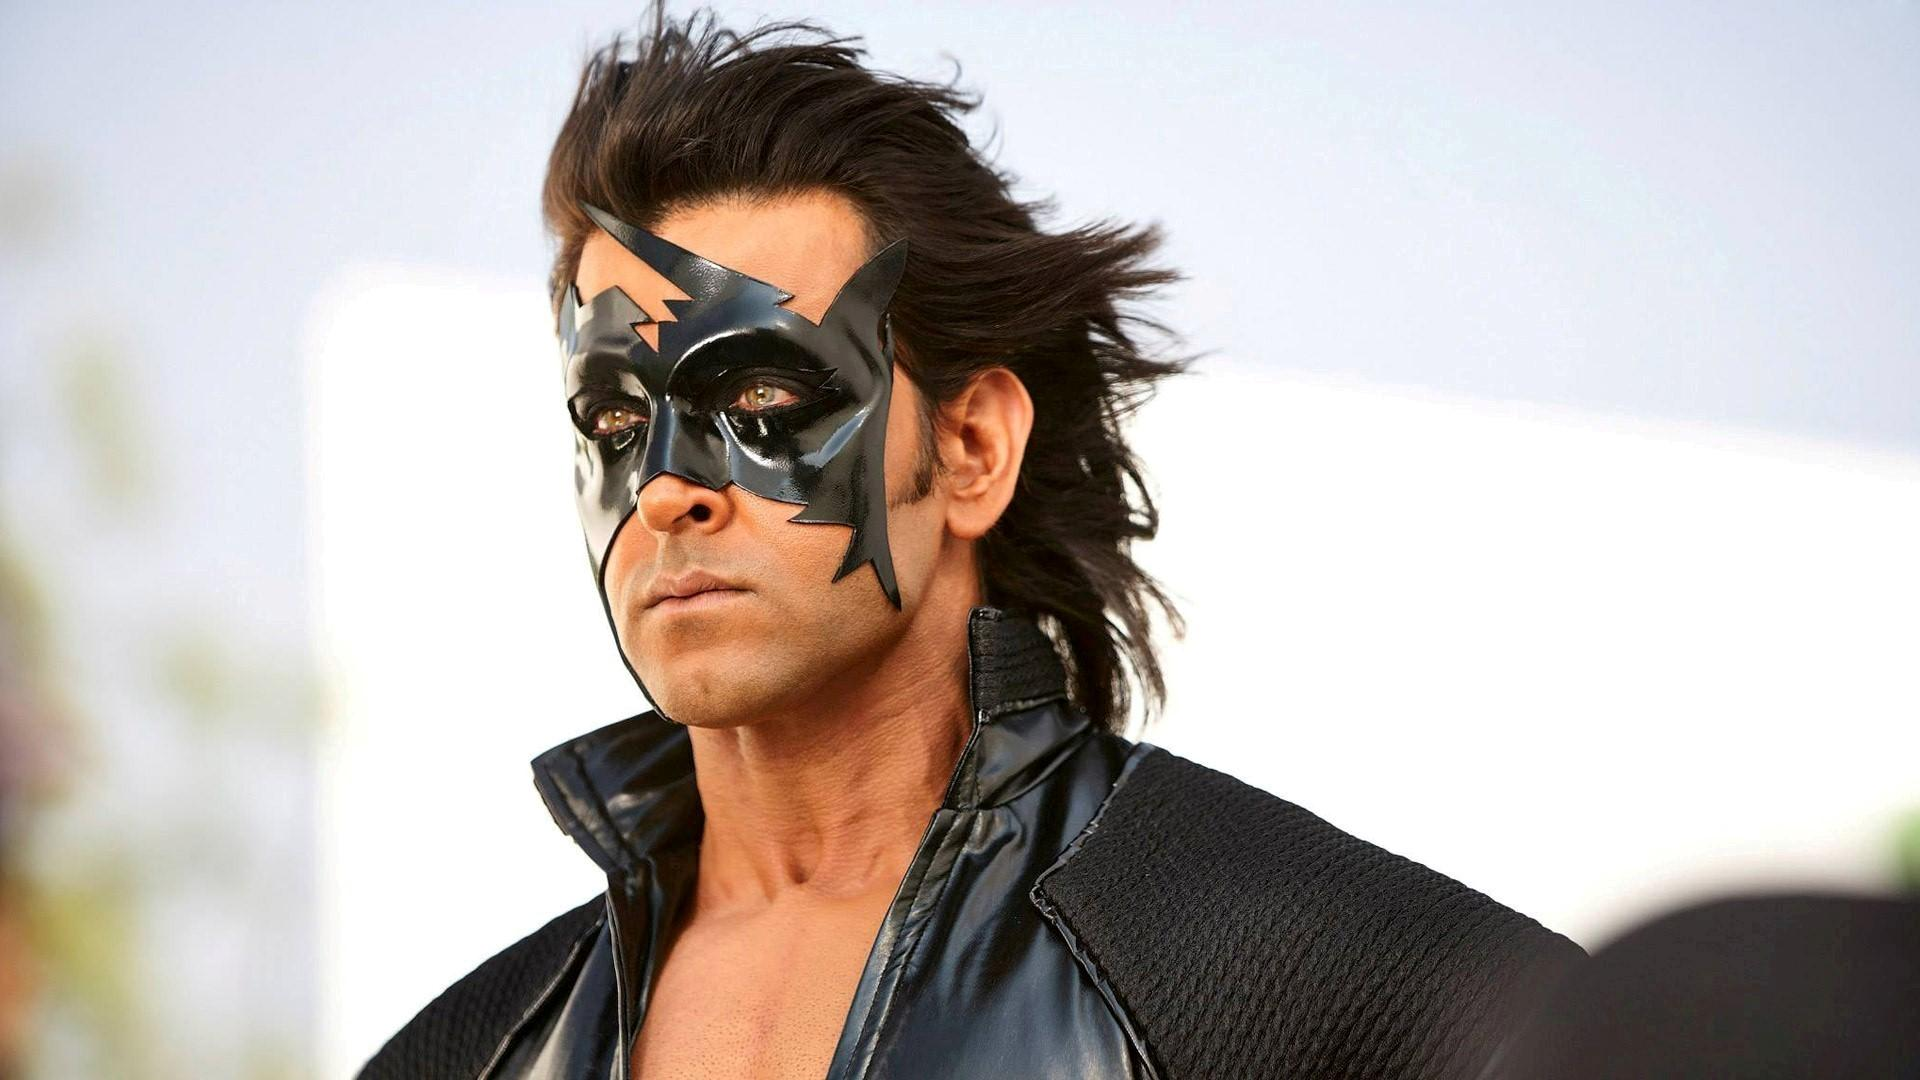 Bollywood Movie Krrish 3 Hrithik Roshan Wallpapers